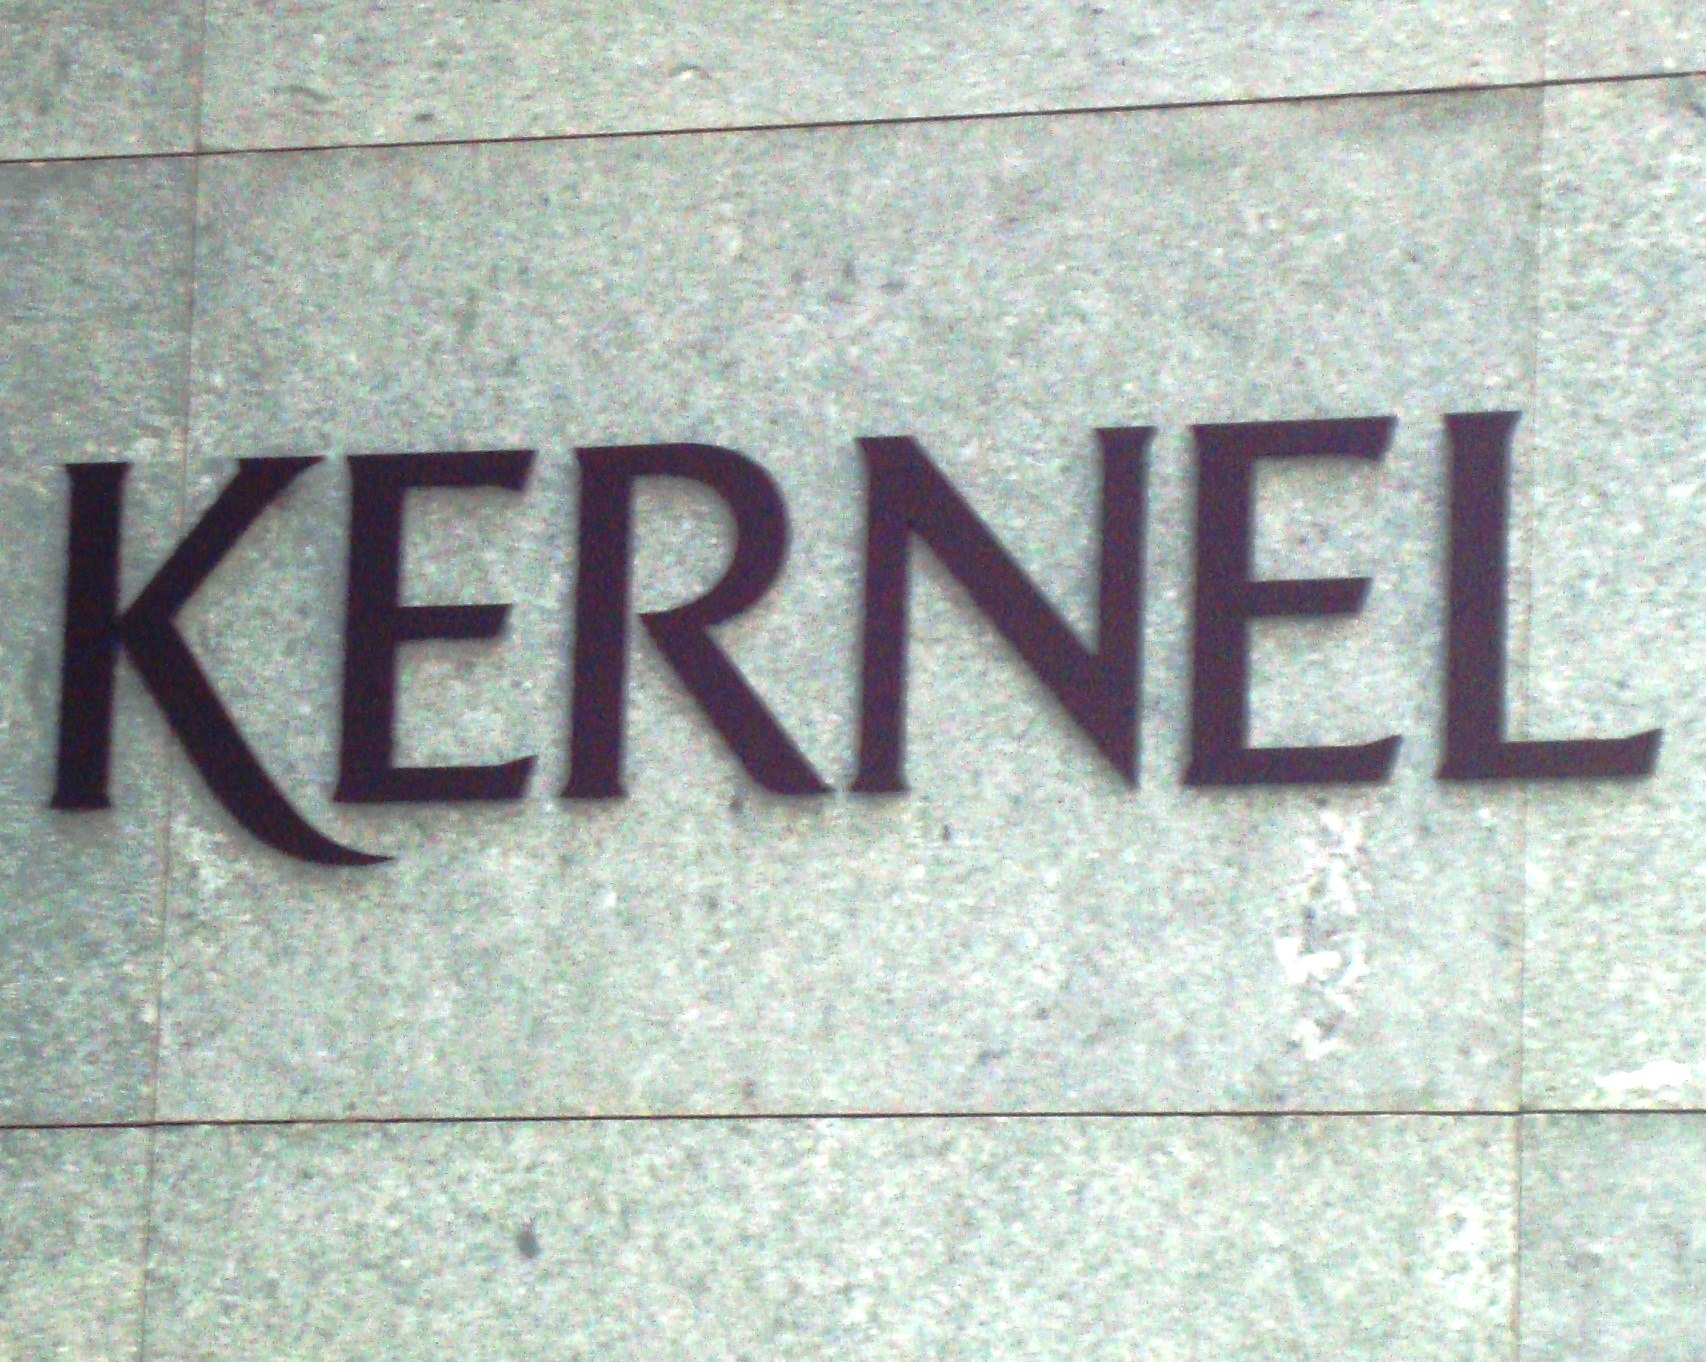 Kernel S.A. discloses interim financial statements for period ending Sep 30 2014